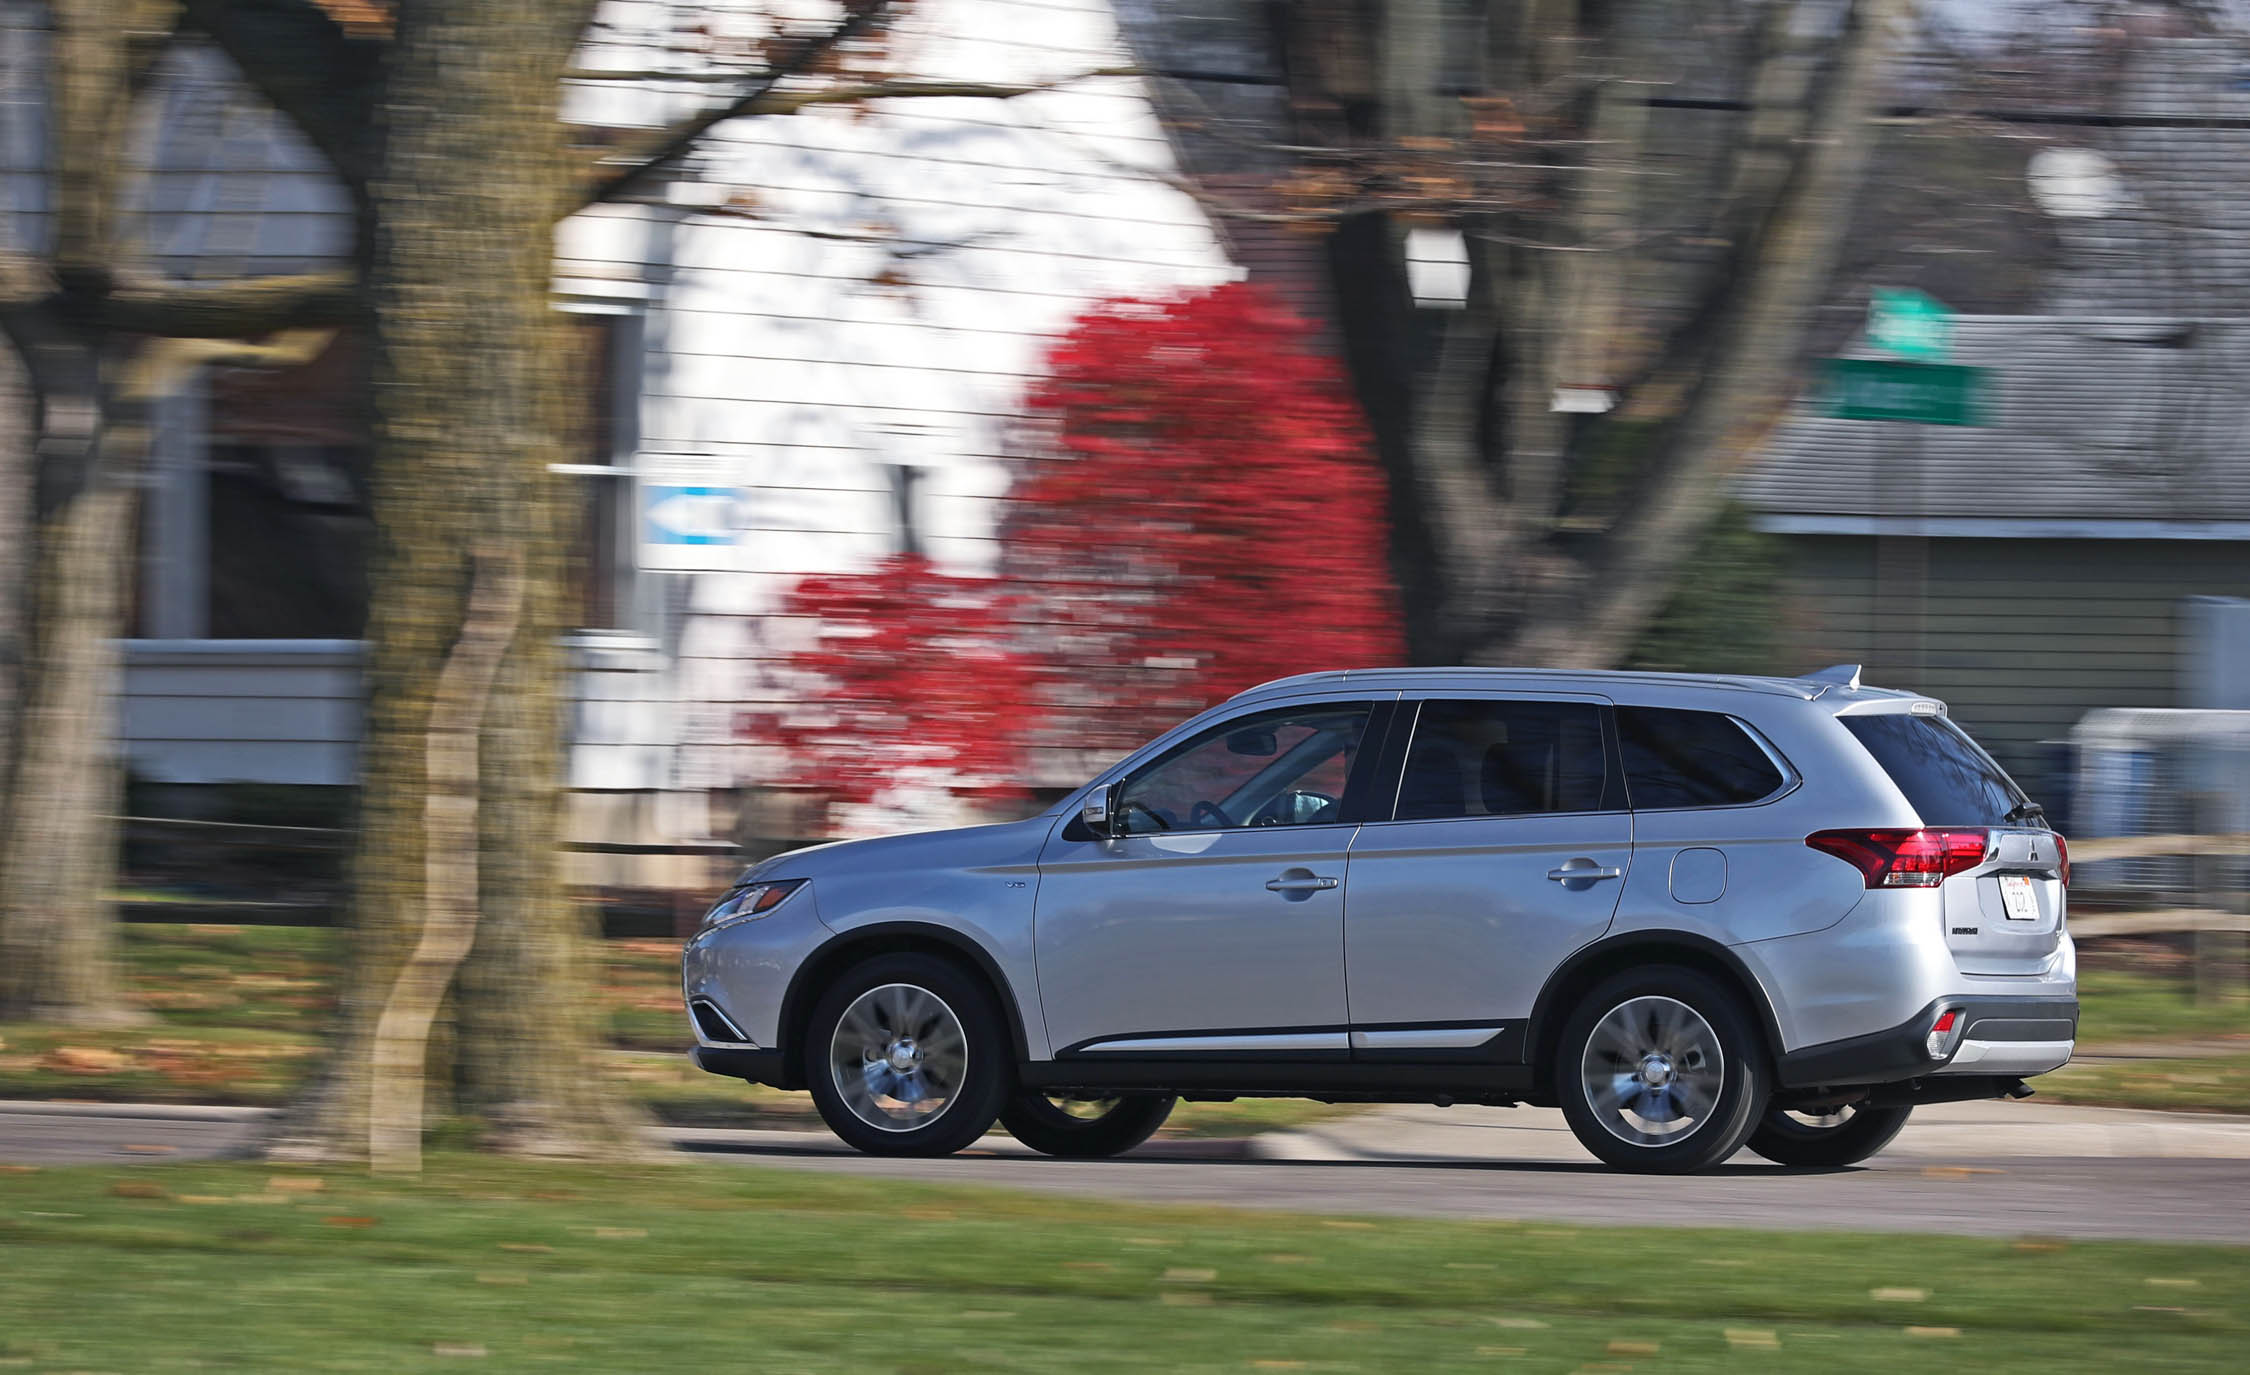 2017 Mitsubishi Outlander Test Drive Side View (View 3 of 34)